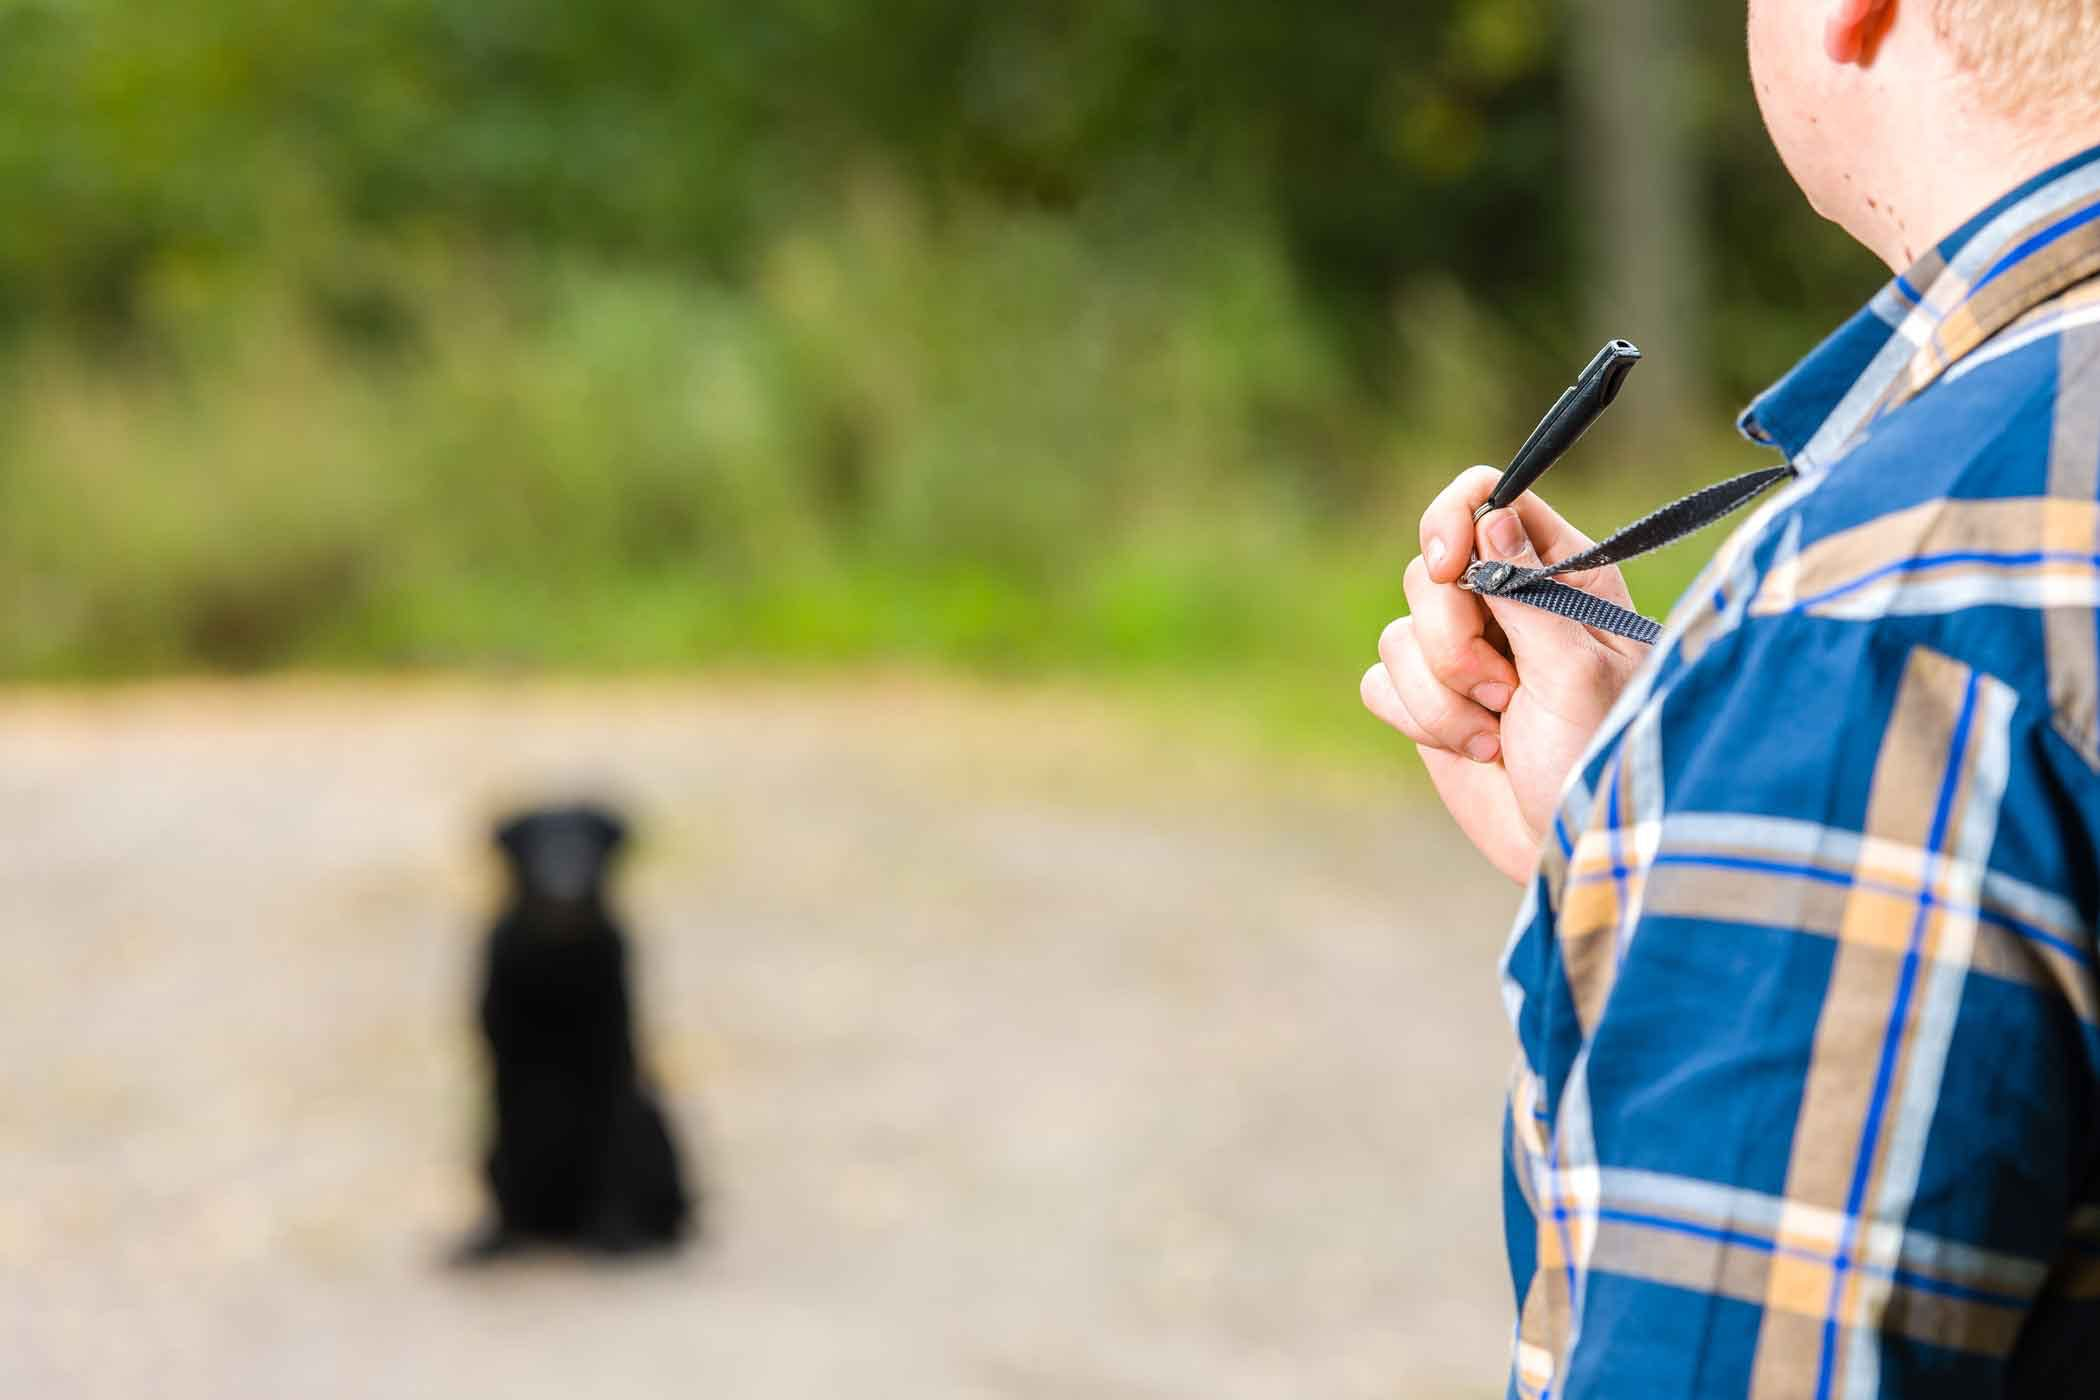 How To Train Your Dog To Respond To A Whistle